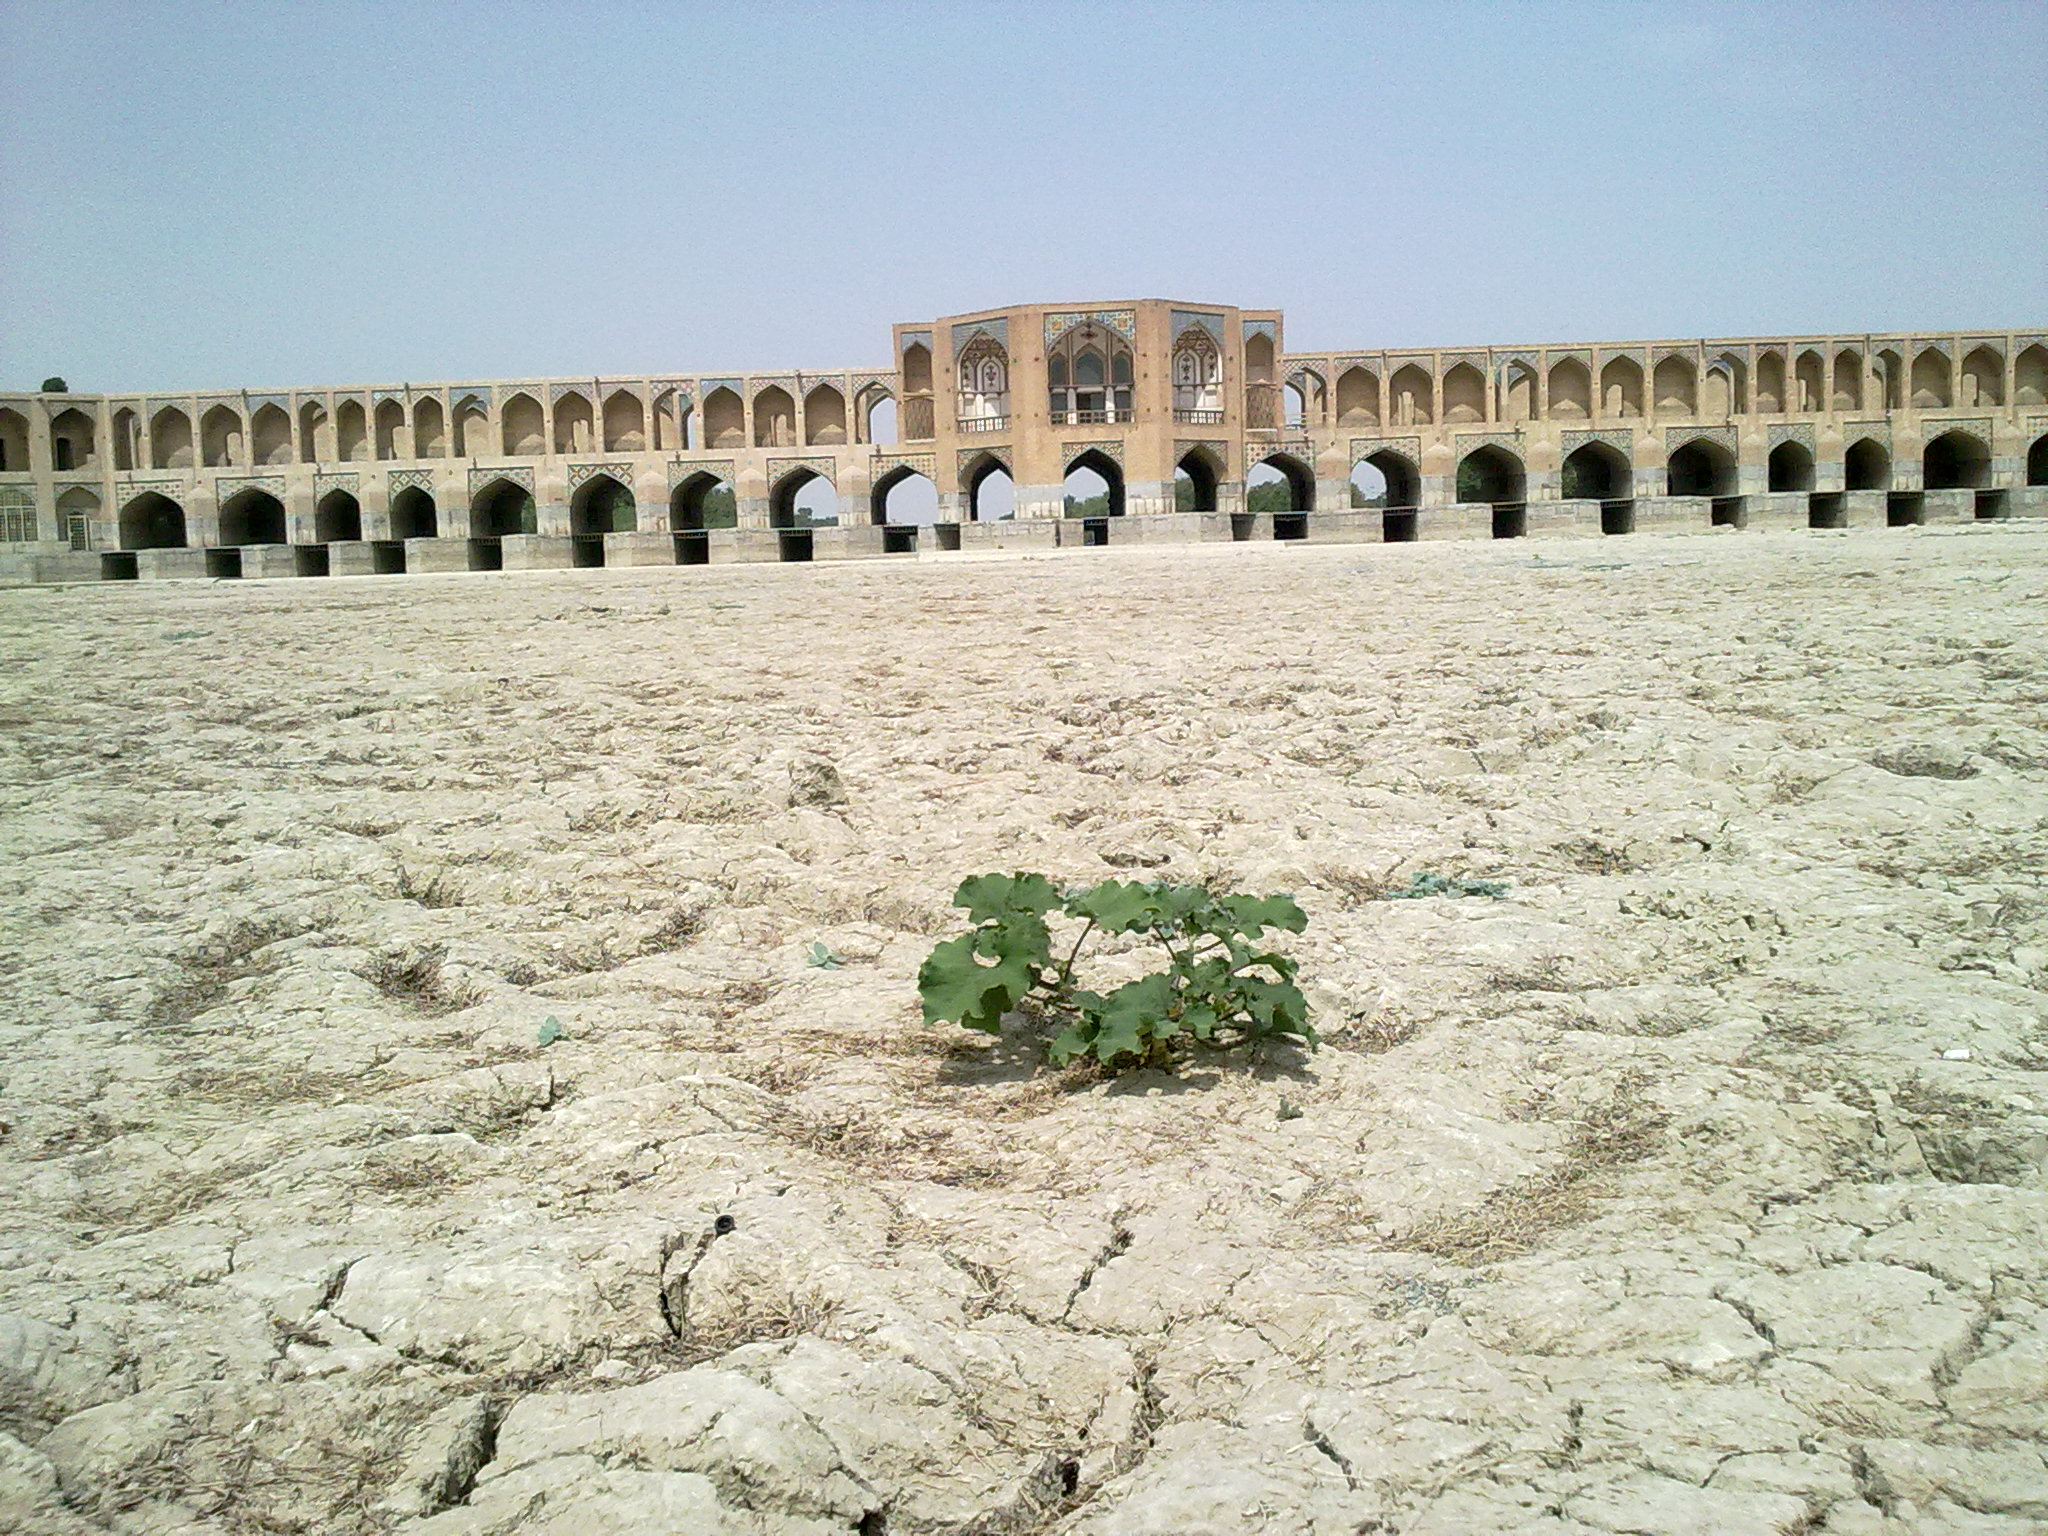 Zayandeh rood dry